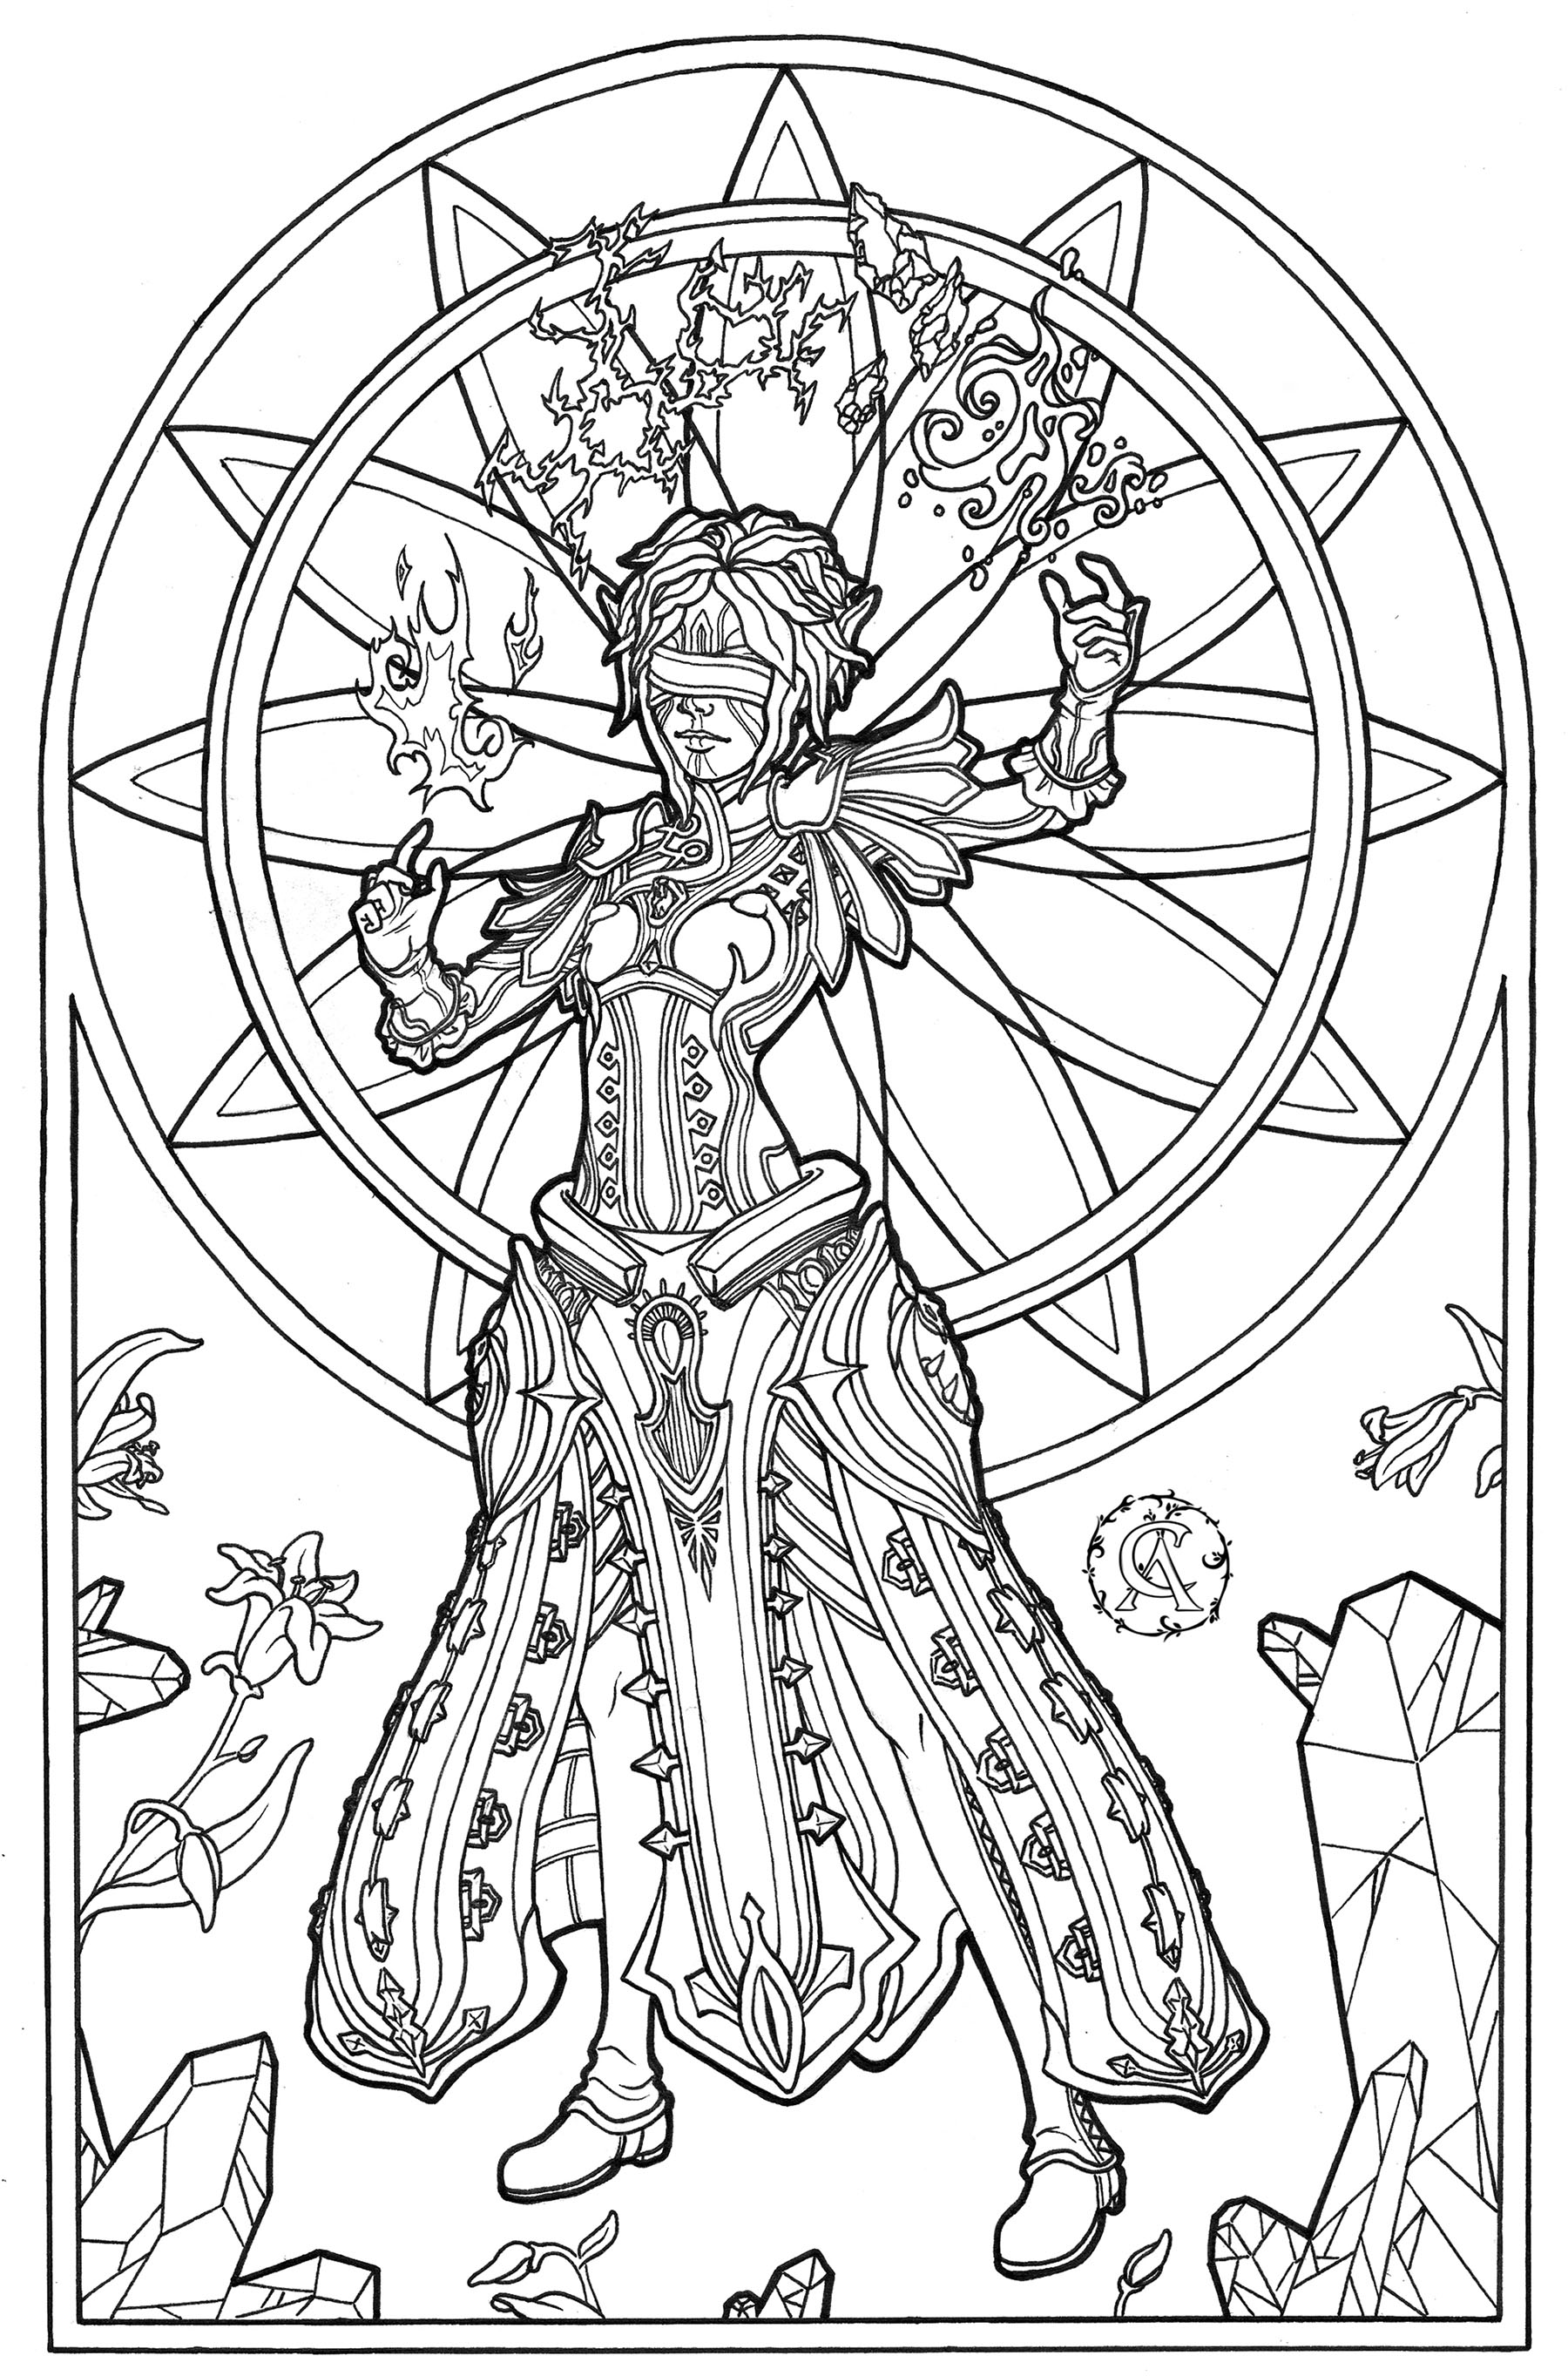 painting coloring pages printable therapeutic coloring pages at getcoloringscom painting pages coloring